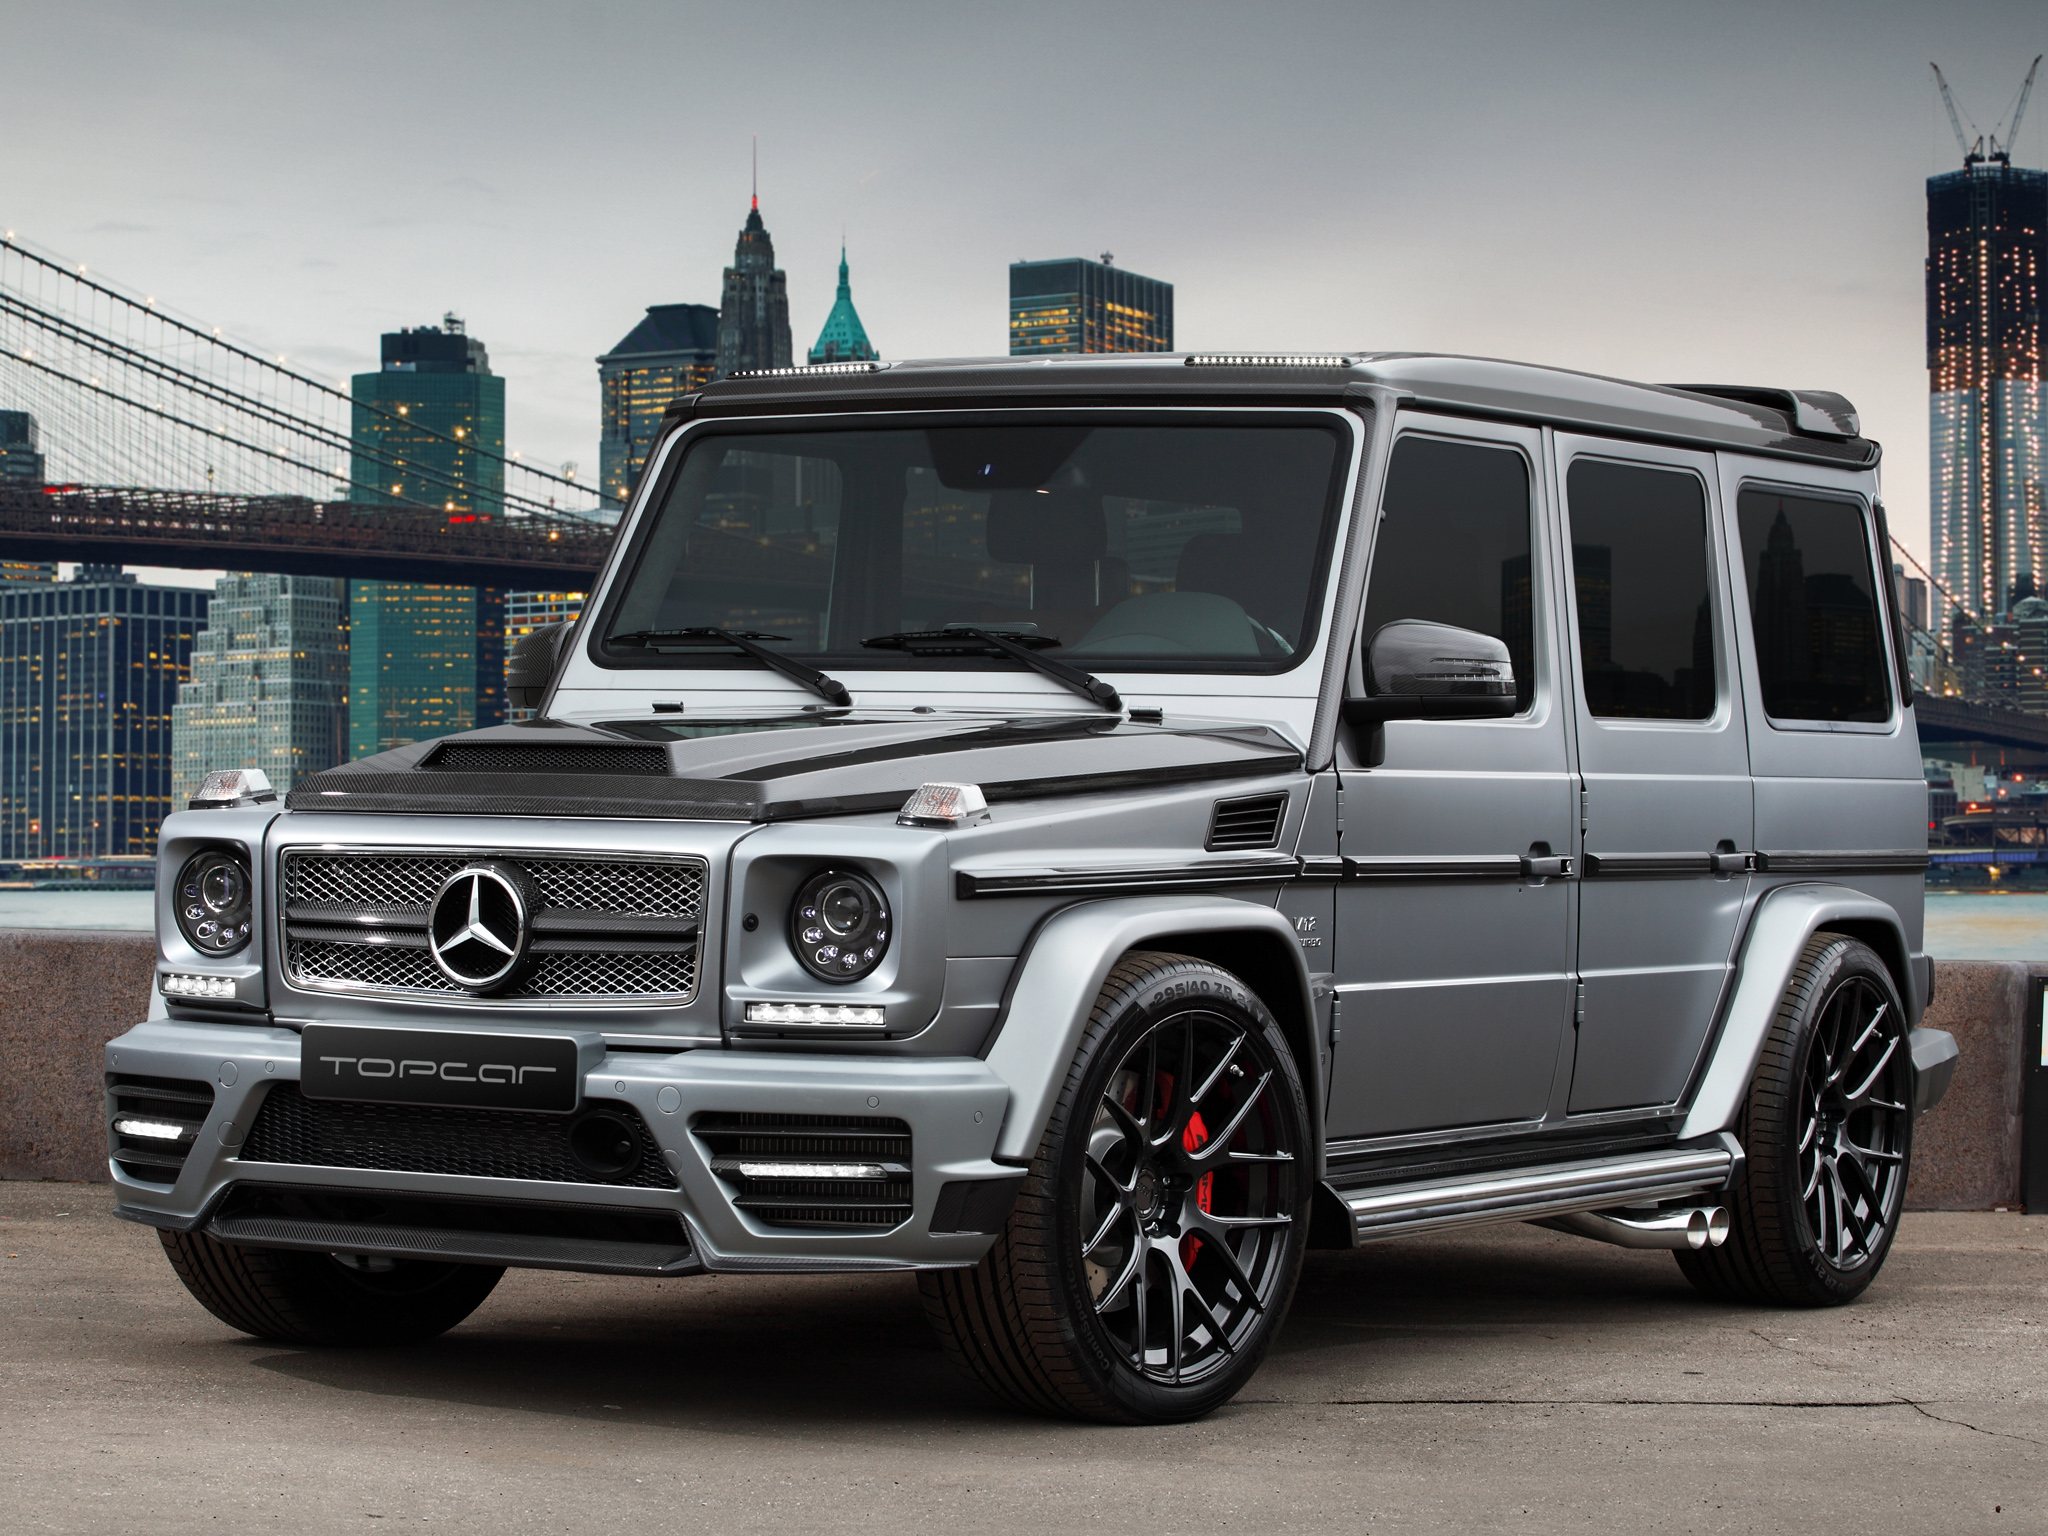 2013 mansory mercedes benz g65 amg w463 suv tuning for Mercedes benz g65